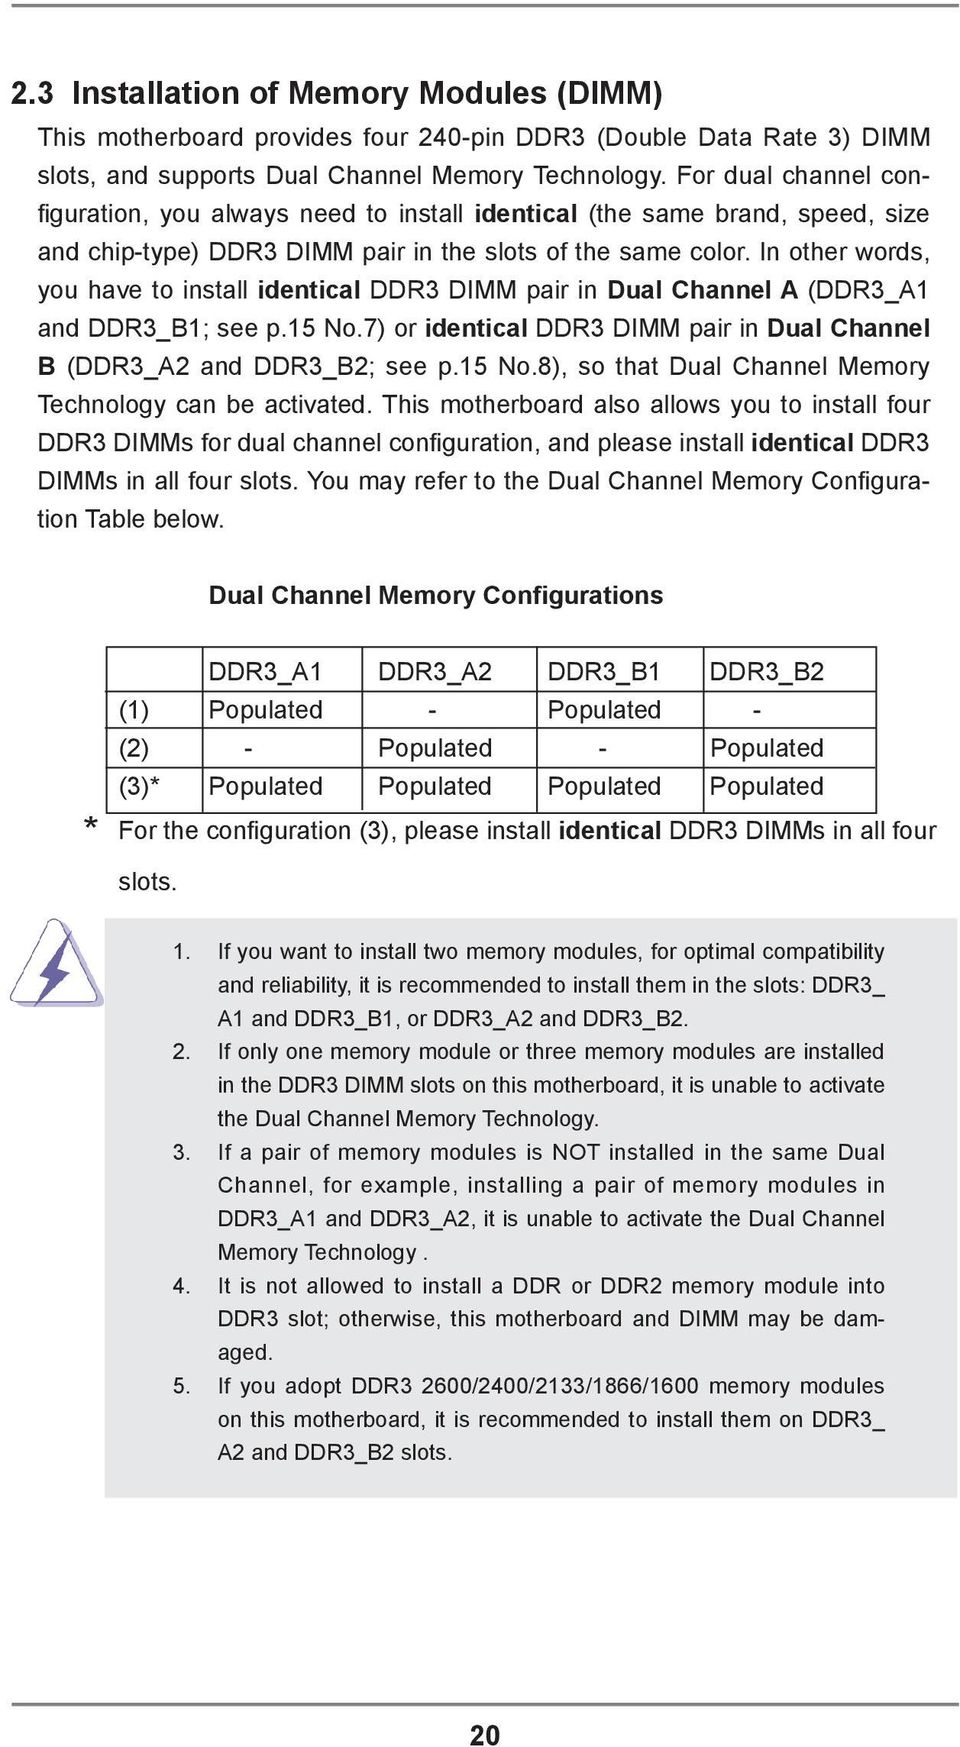 In other words, you have to install identical DDR3 DIMM pair in Dual Channel A (DDR3_A1 and DDR3_B1; see p.15 No.7) or identical DDR3 DIMM pair in Dual Channel B (DDR3_A2 and DDR3_B2; see p.15 No.8), so that Dual Channel Memory Technology can be activated.